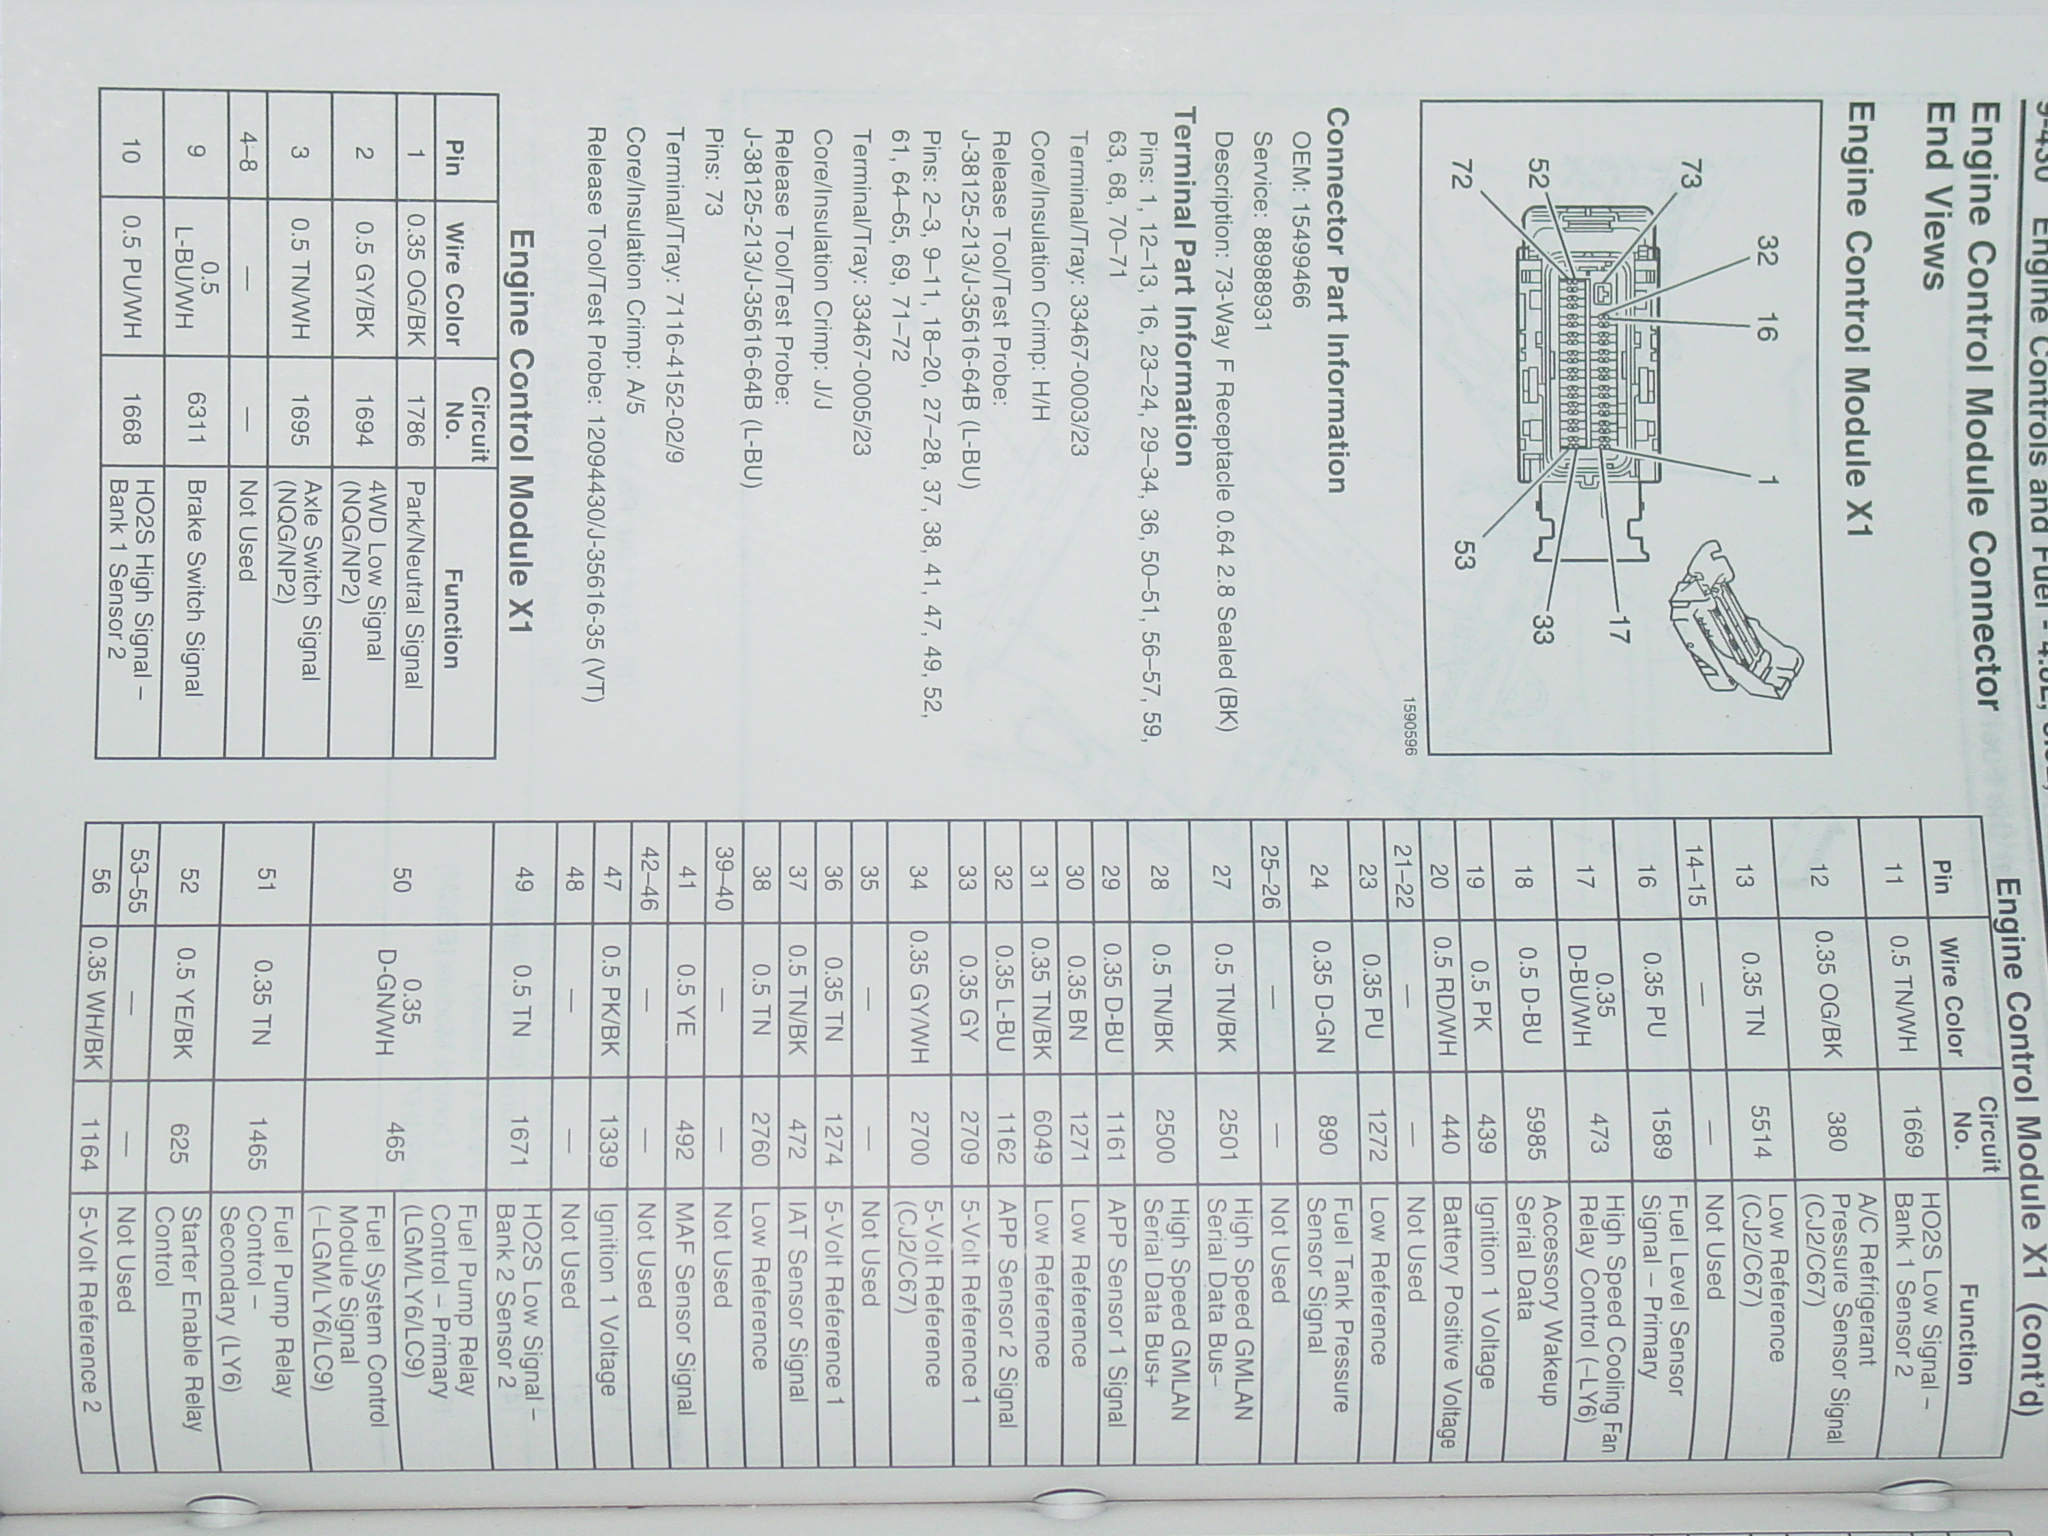 Duramax Ecm Pinout 2003 Wiring Diagram Pin Out For Electric Fans 2048x1536